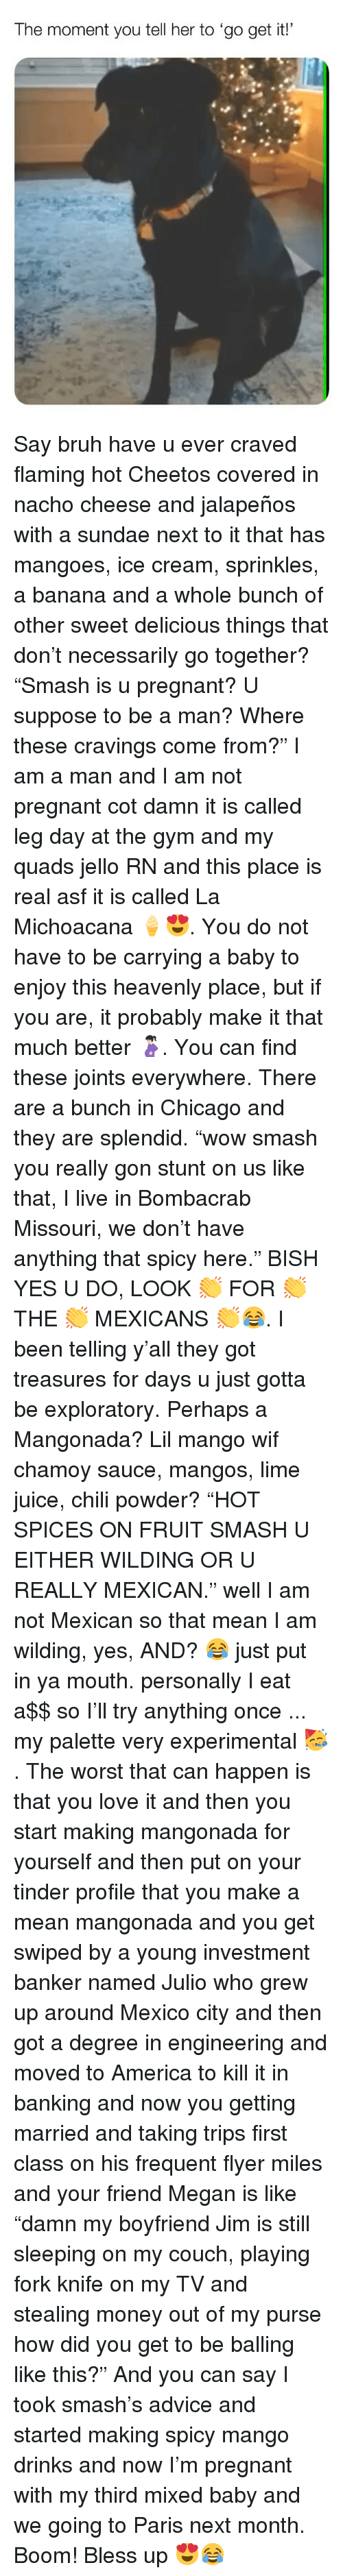 "Advice, America, and Bless Up: The moment you tell her to 'go get it! Say bruh have u ever craved flaming hot Cheetos covered in nacho cheese and jalapeños with a sundae next to it that has mangoes, ice cream, sprinkles, a banana and a whole bunch of other sweet delicious things that don't necessarily go together? ""Smash is u pregnant? U suppose to be a man? Where these cravings come from?"" I am a man and I am not pregnant cot damn it is called leg day at the gym and my quads jello RN and this place is real asf it is called La Michoacana 🍦😍. You do not have to be carrying a baby to enjoy this heavenly place, but if you are, it probably make it that much better 🤰🏻. You can find these joints everywhere. There are a bunch in Chicago and they are splendid. ""wow smash you really gon stunt on us like that, I live in Bombacrab Missouri, we don't have anything that spicy here."" BISH YES U DO, LOOK 👏 FOR 👏 THE 👏 MEXICANS 👏😂. I been telling y'all they got treasures for days u just gotta be exploratory. Perhaps a Mangonada? Lil mango wif chamoy sauce, mangos, lime juice, chili powder? ""HOT SPICES ON FRUIT SMASH U EITHER WILDING OR U REALLY MEXICAN."" well I am not Mexican so that mean I am wilding, yes, AND? 😂 just put in ya mouth. personally I eat a$$ so I'll try anything once ... my palette very experimental 🥳. The worst that can happen is that you love it and then you start making mangonada for yourself and then put on your tinder profile that you make a mean mangonada and you get swiped by a young investment banker named Julio who grew up around Mexico city and then got a degree in engineering and moved to America to kill it in banking and now you getting married and taking trips first class on his frequent flyer miles and your friend Megan is like ""damn my boyfriend Jim is still sleeping on my couch, playing fork knife on my TV and stealing money out of my purse how did you get to be balling like this?"" And you can say I took smash's advice and started making spicy mango drinks and now I'm pregnant with my third mixed baby and we going to Paris next month. Boom! Bless up 😍😂"